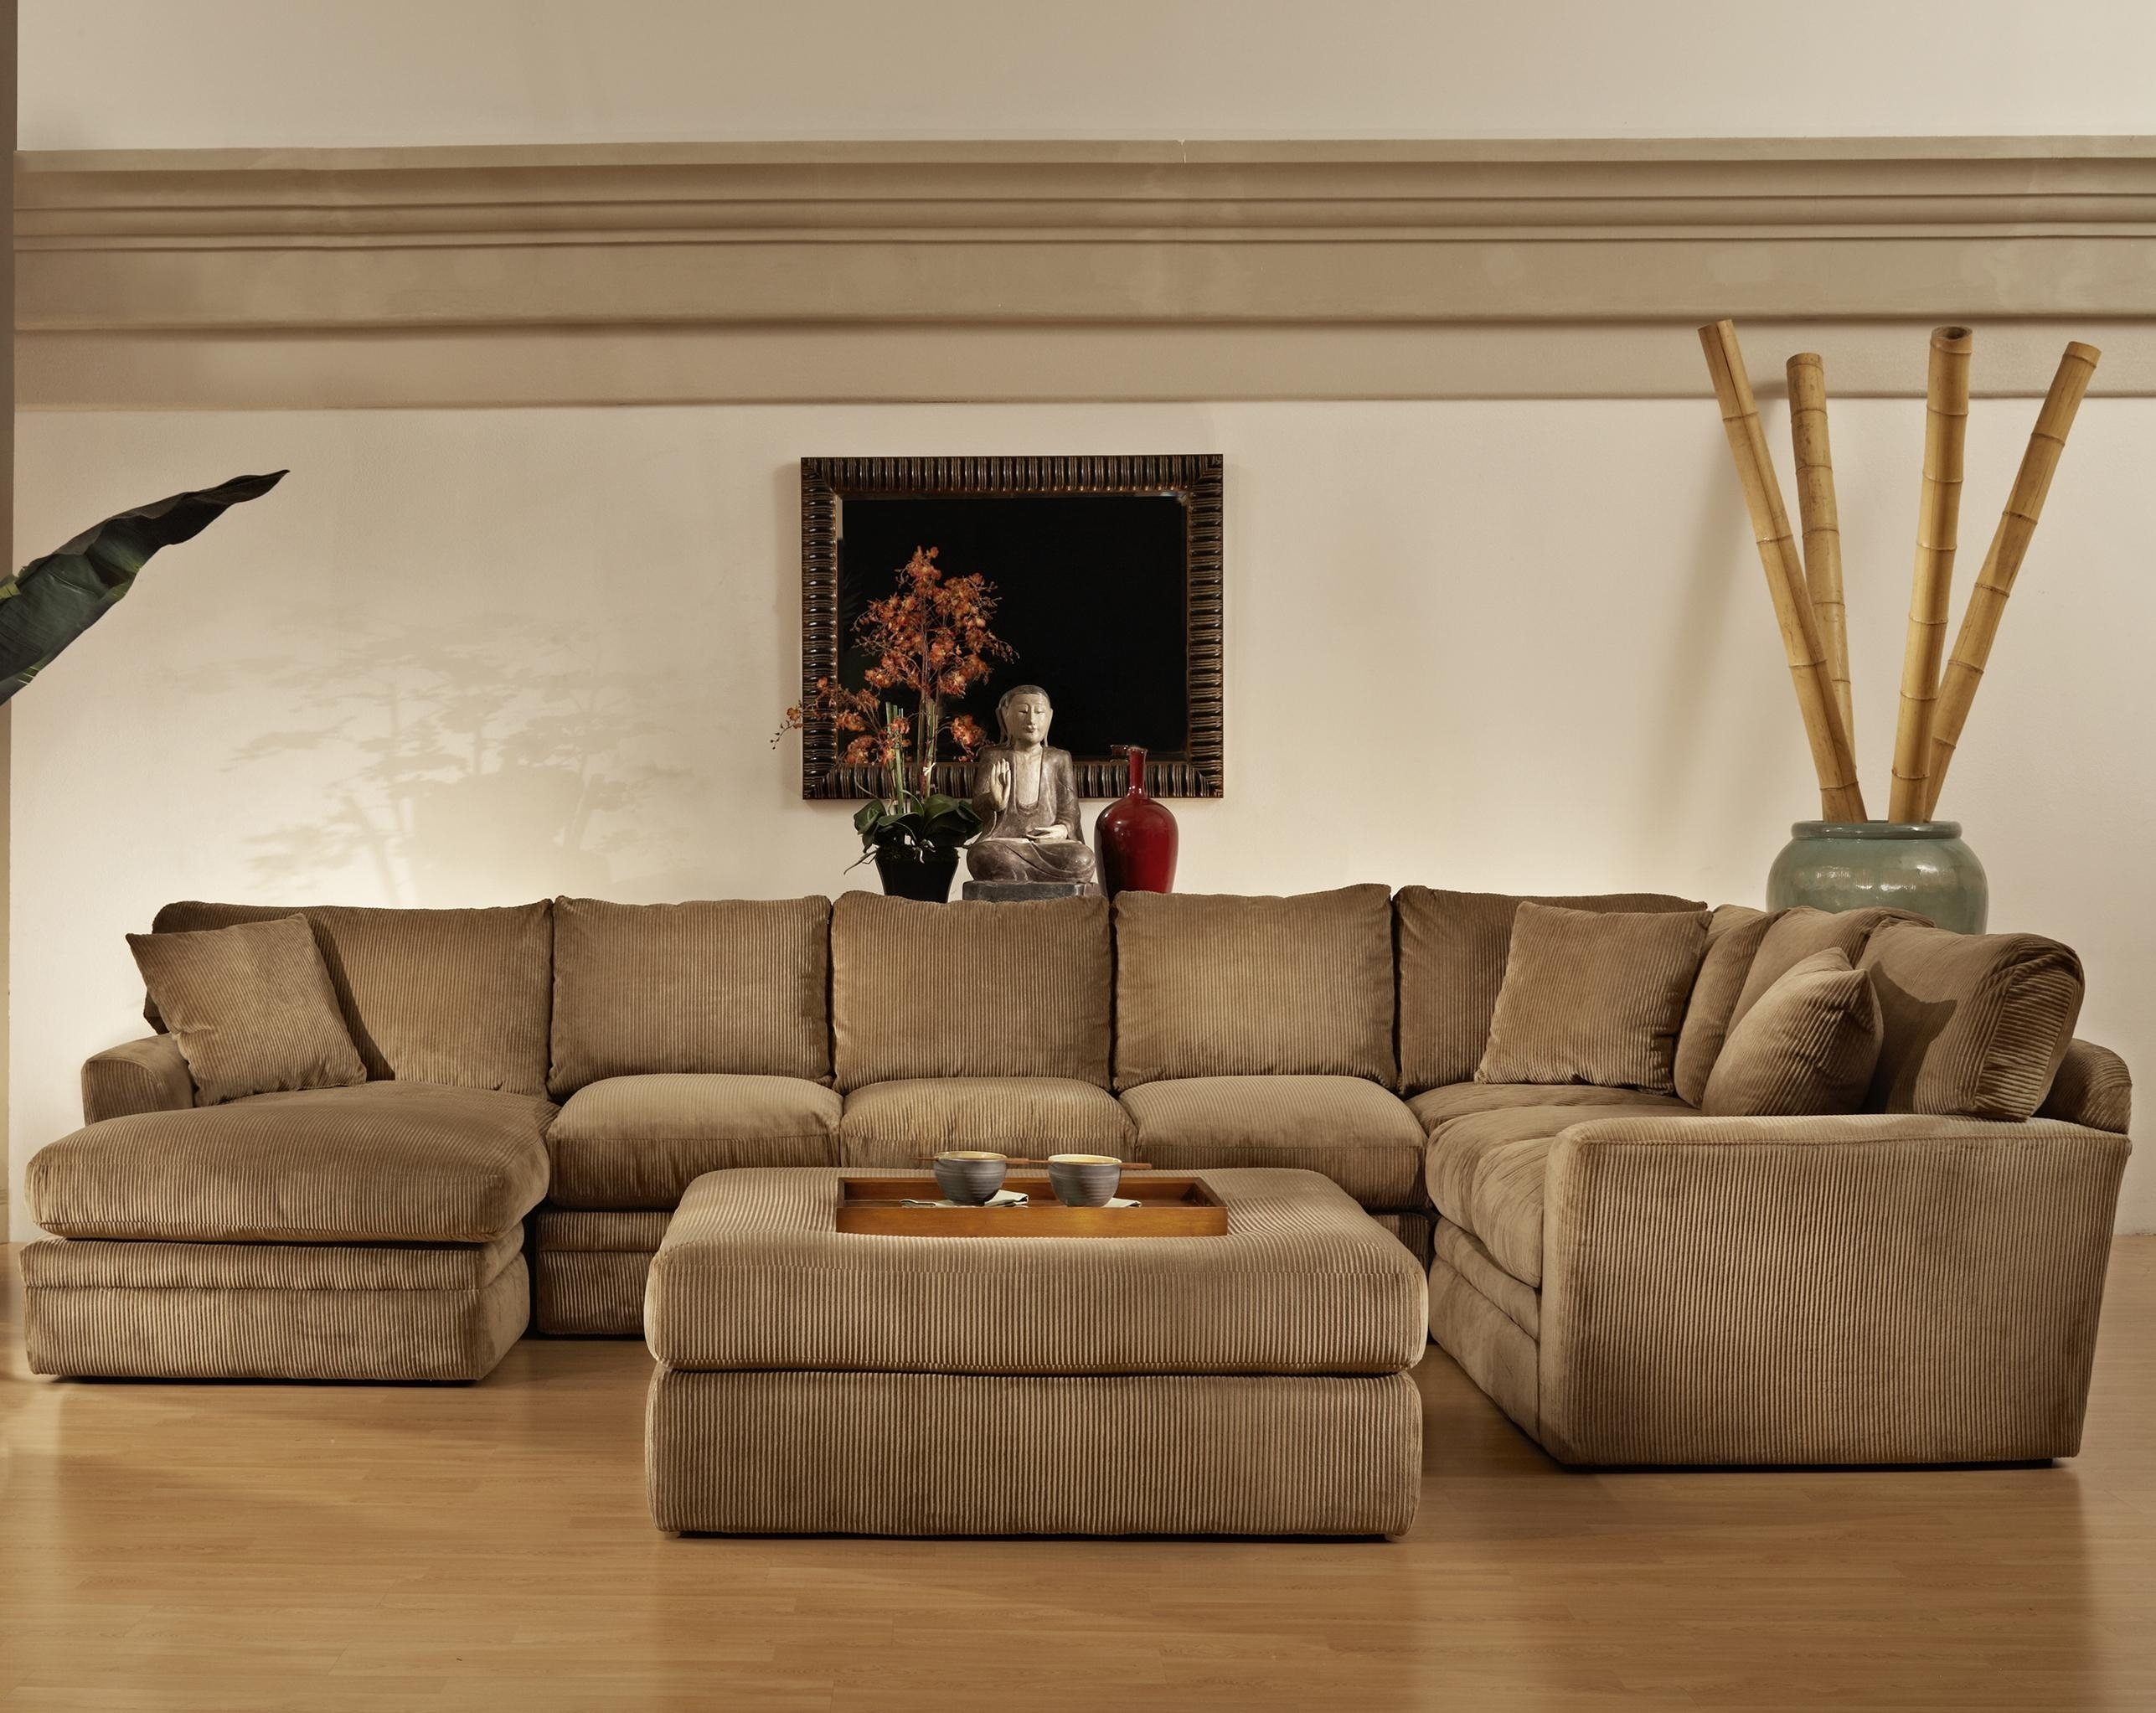 Extra Large Sectional Sofa With Chaise And Ottoman U Shaped In Brown inside Sectional Sofas With Chaise And Ottoman (Image 7 of 15)